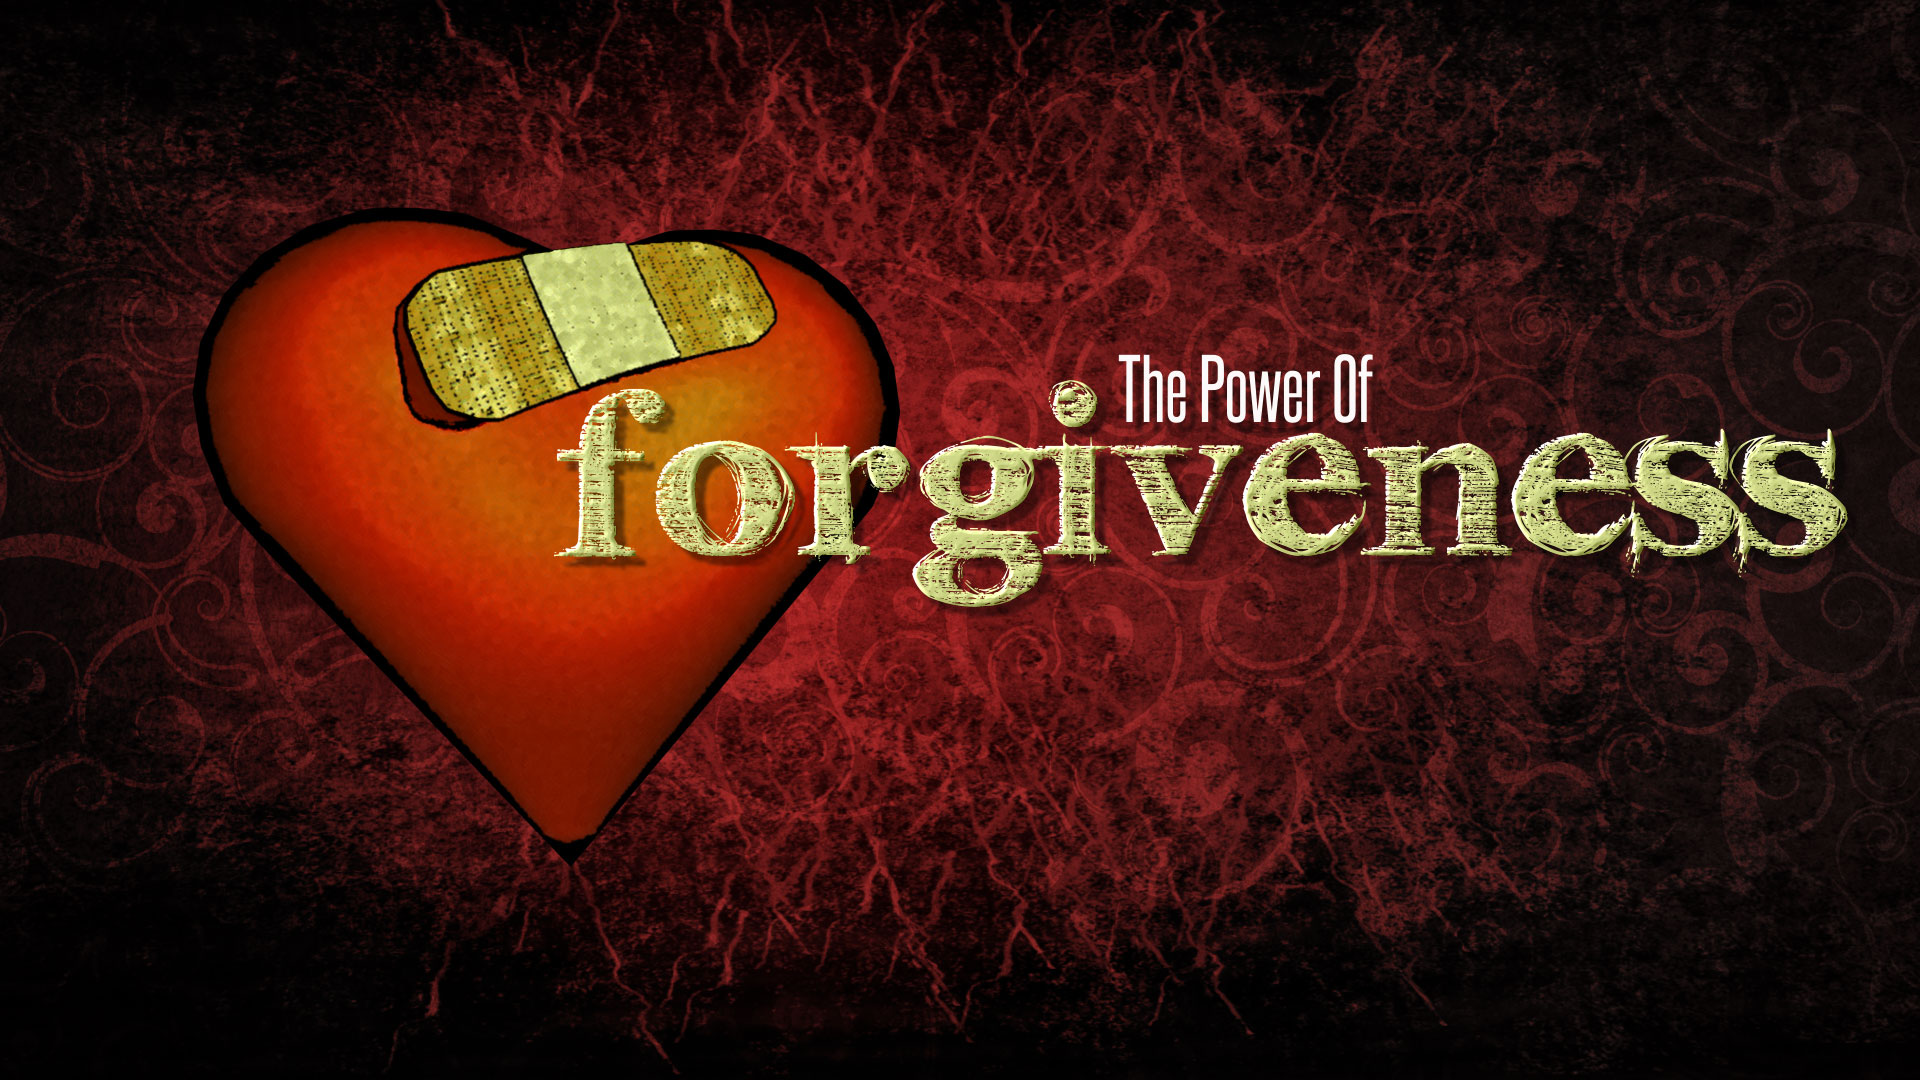 a game of forgiveness Forgiveness requires work but, most importantly, it requires a connection to g-d, the giver of life when you remember that your birth is g-d's way of saying you matter.